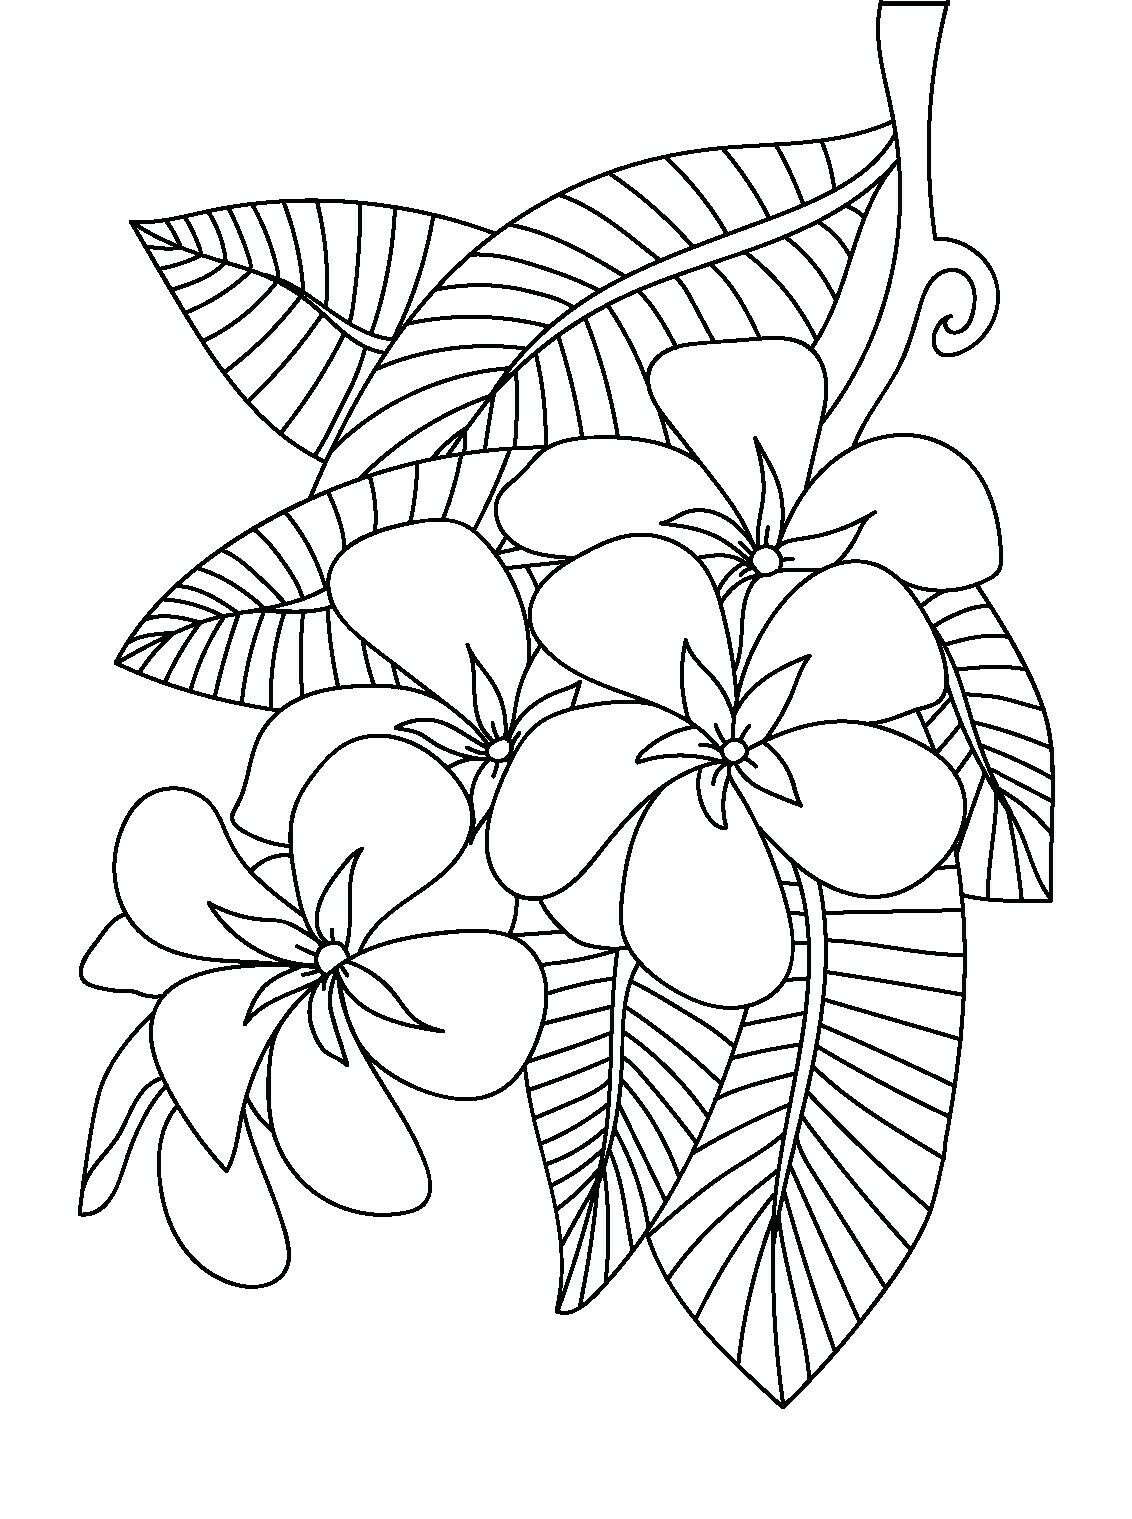 Plumeria Flower Coloring Pages at GetColorings.com | Free ...